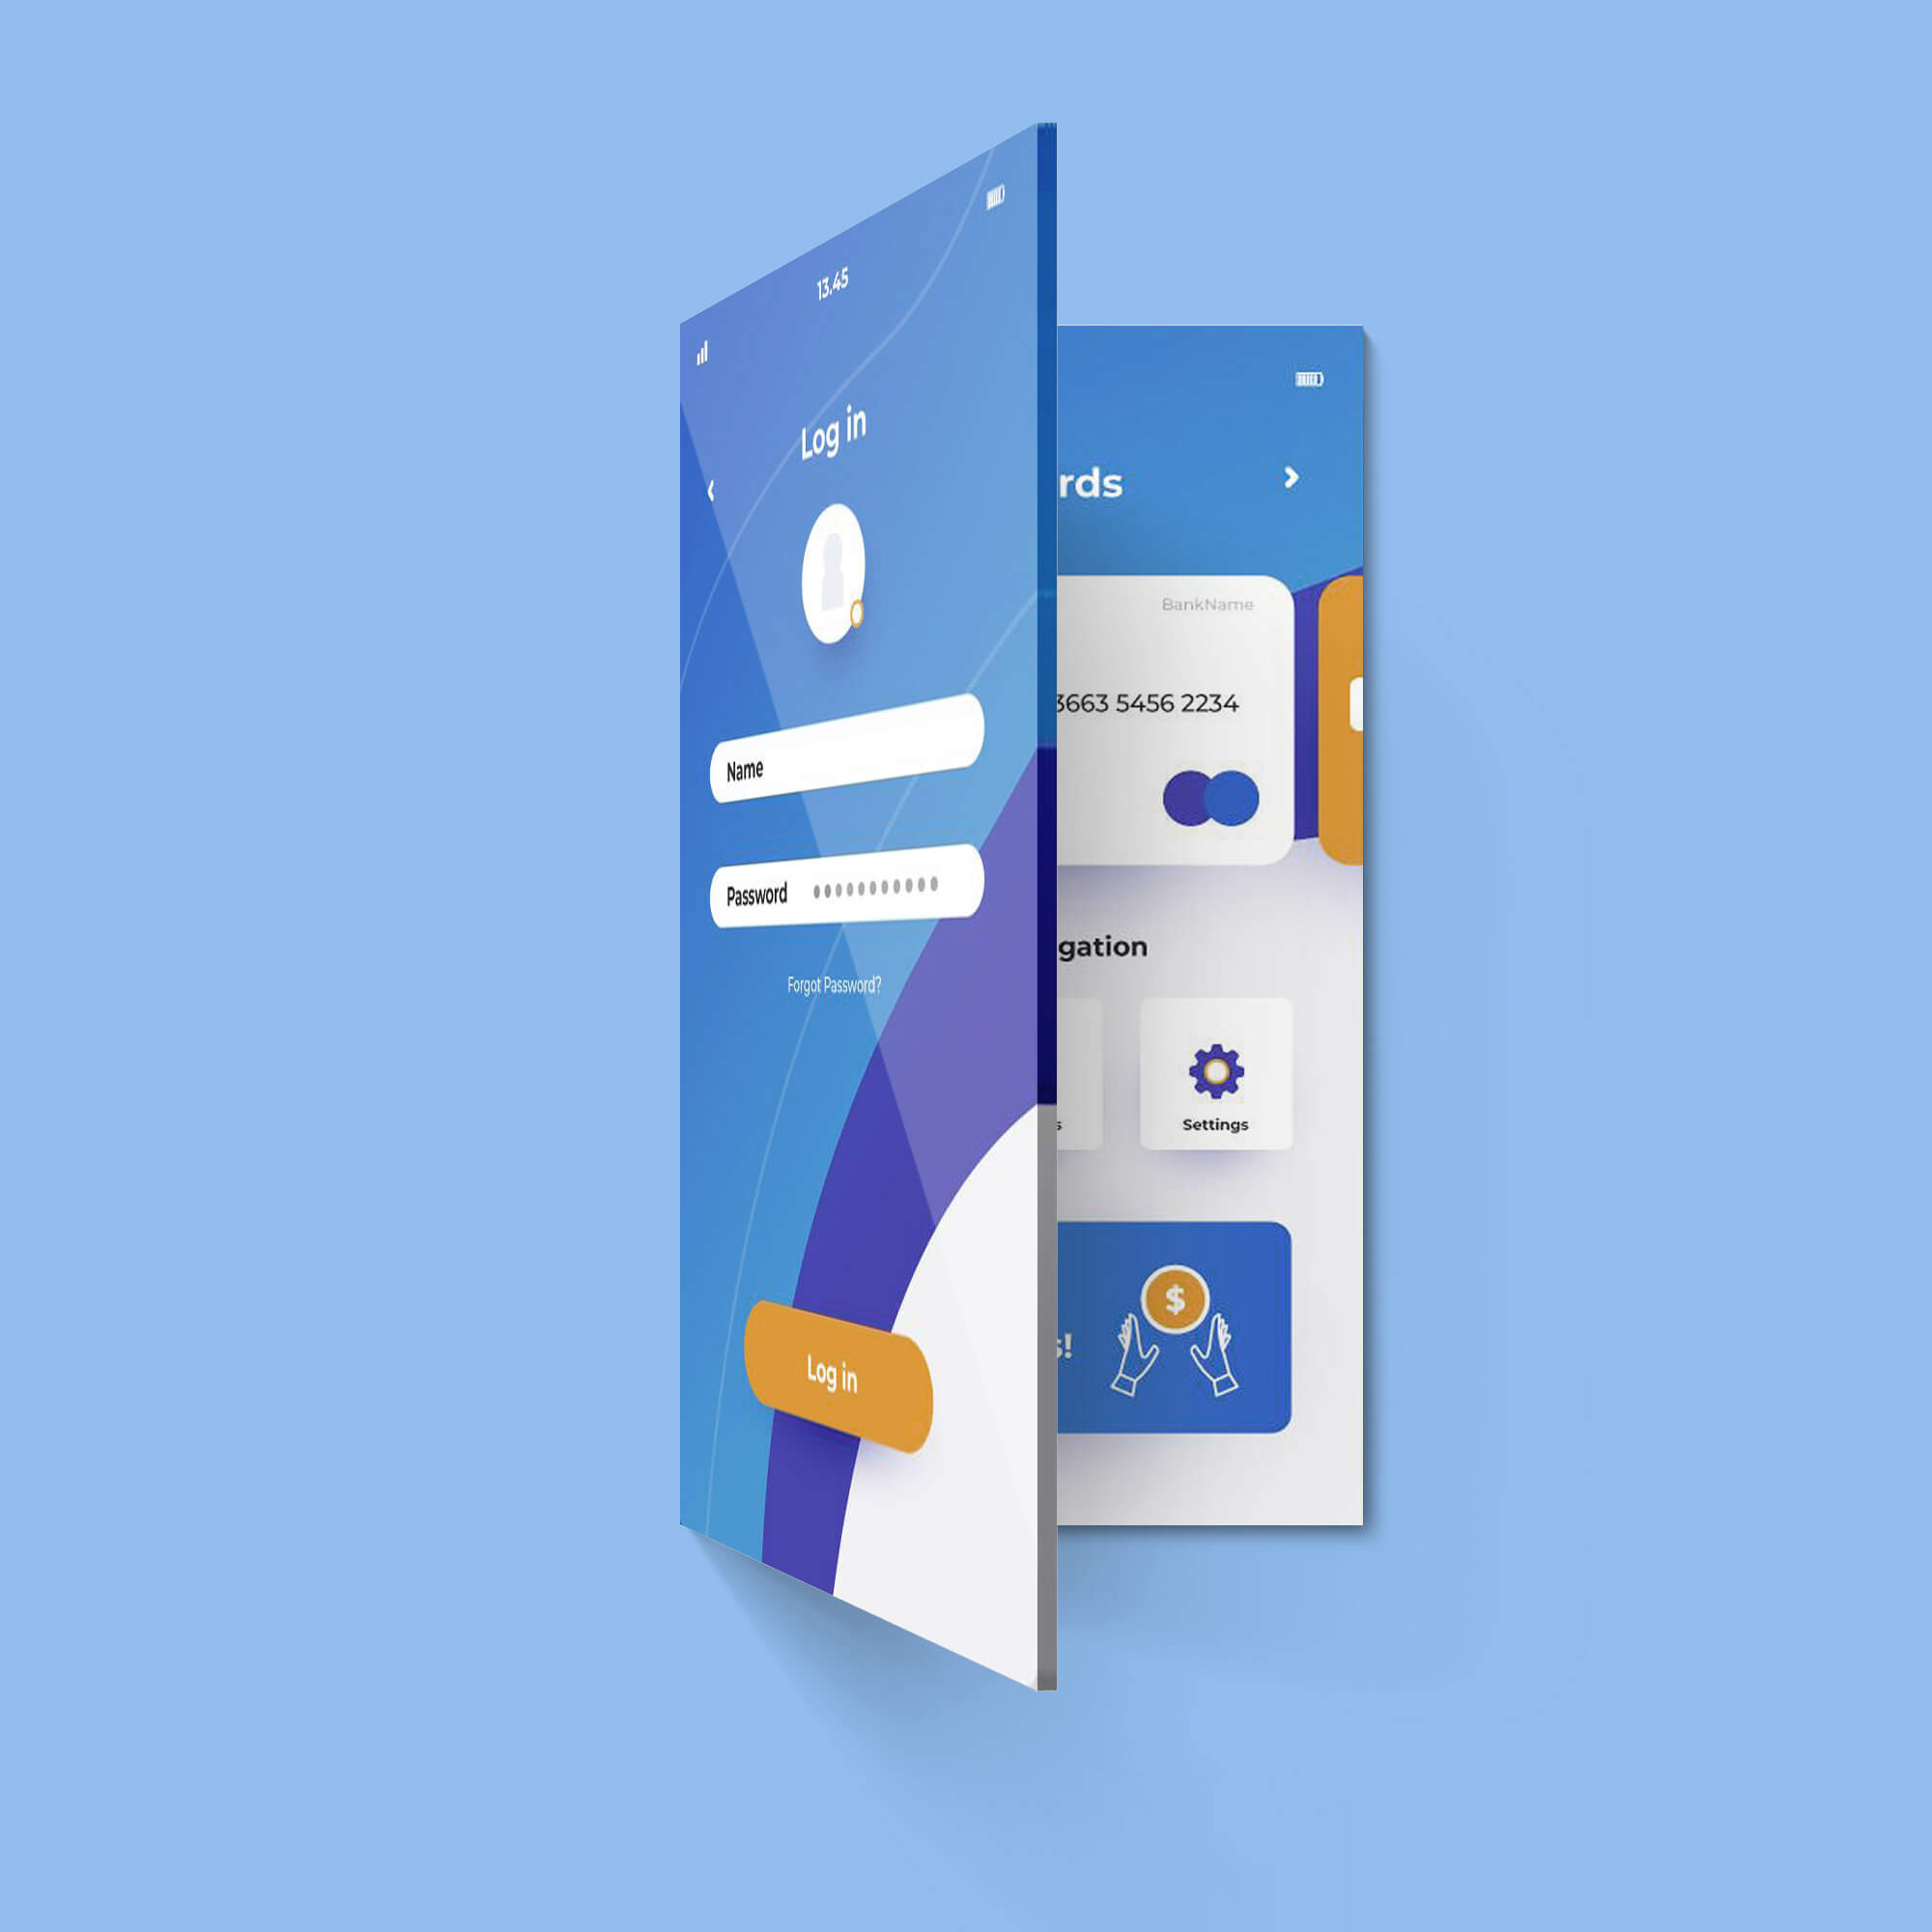 Free Android App Mockup PSD Template (1)